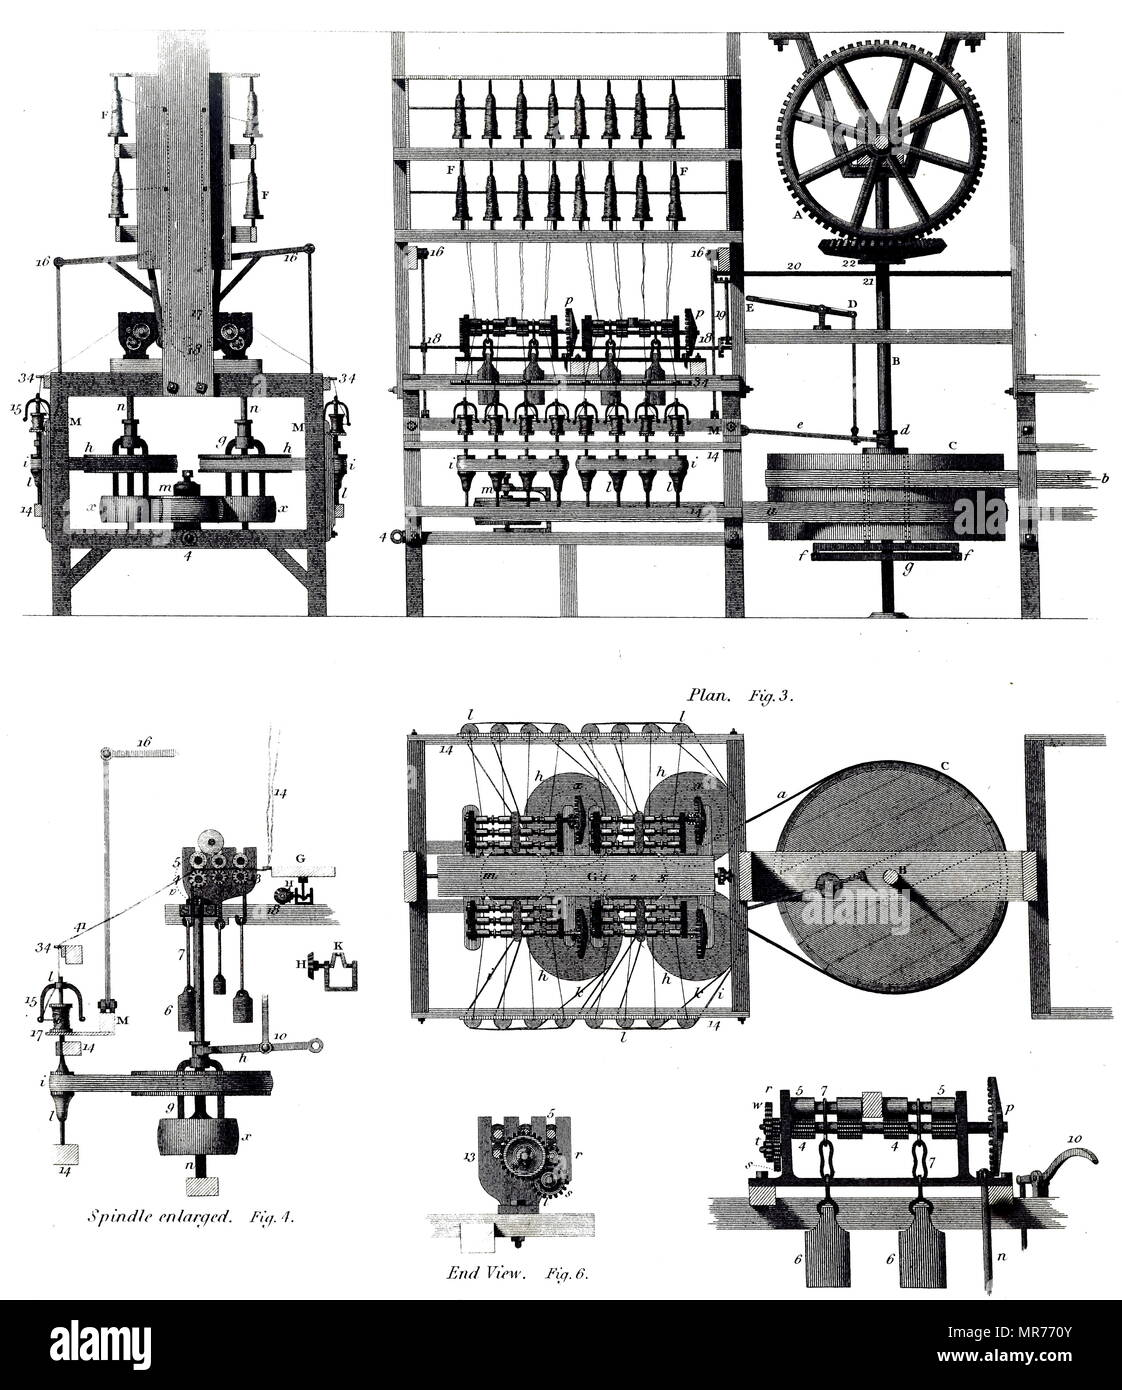 Engraving depicting Richard Arkwright's water fame spinning machine. Sir Richard Arkwright (1732-1792) an English inventor and a leading entrepreneur during the Industrial Revolution. Dated 19th century - Stock Image